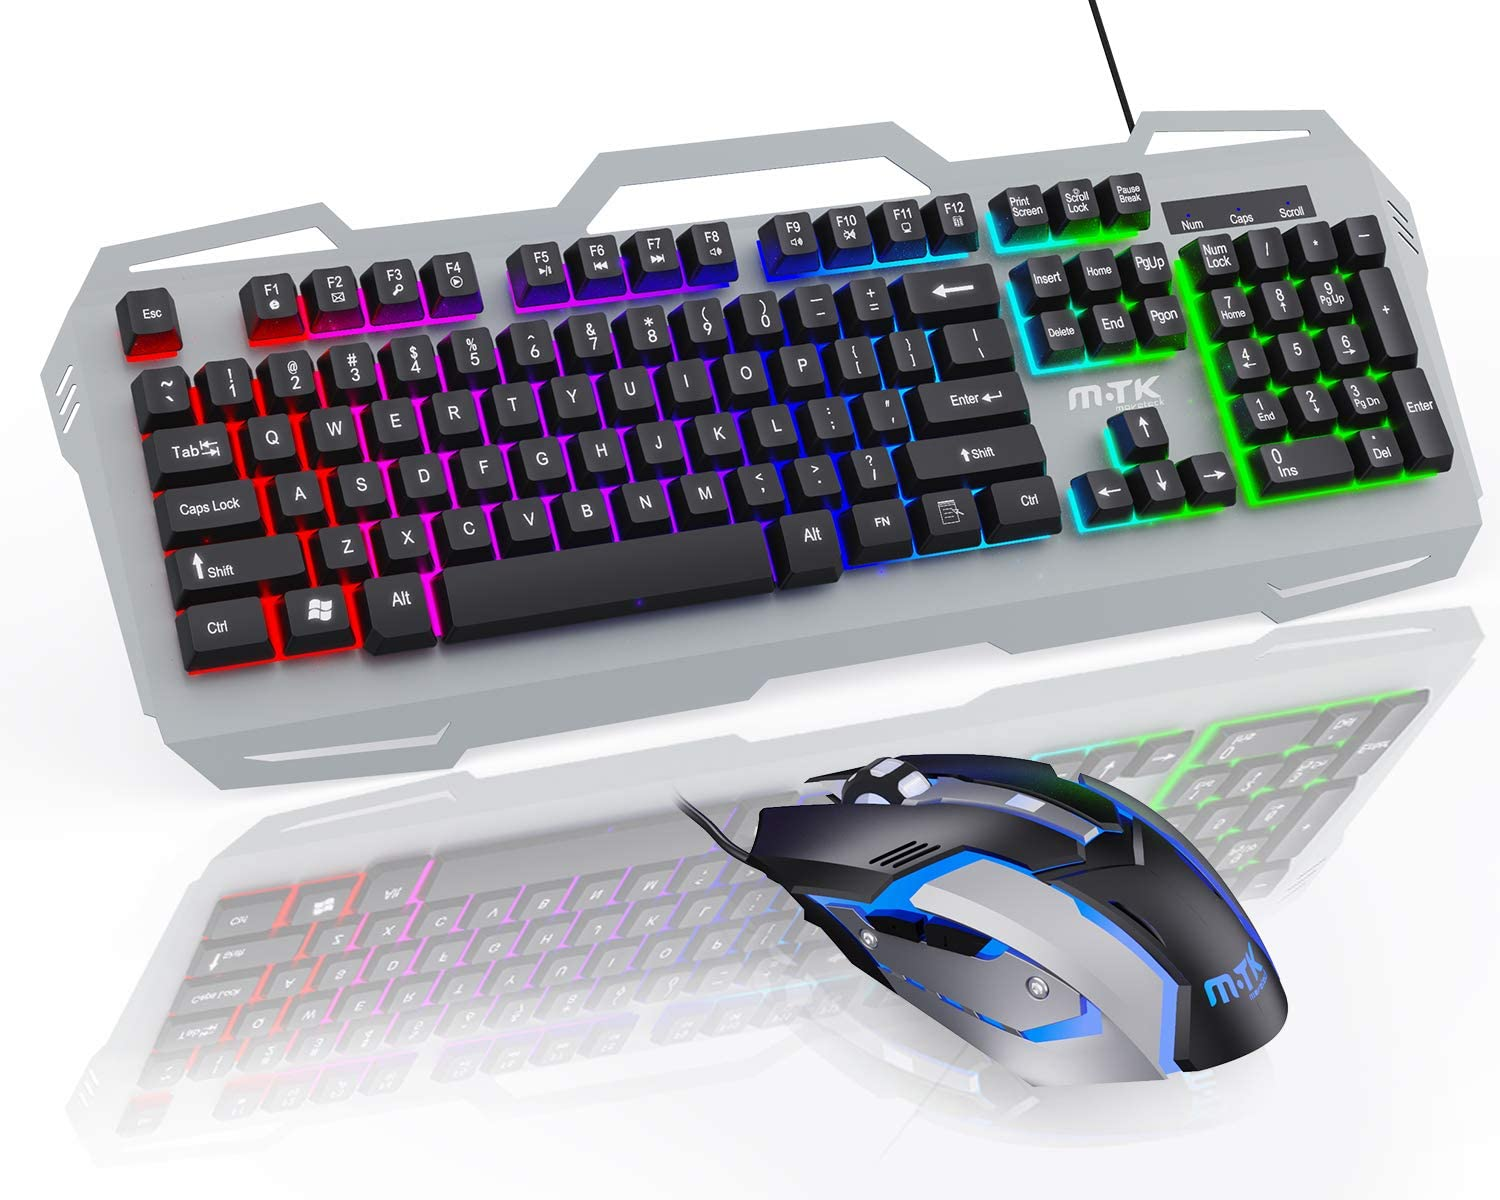 Wired Office Keyboard and Mouse Combo USB Keyboard with Wrist Rest and 1800 DPI Optical Mouse Set for PC Laptop